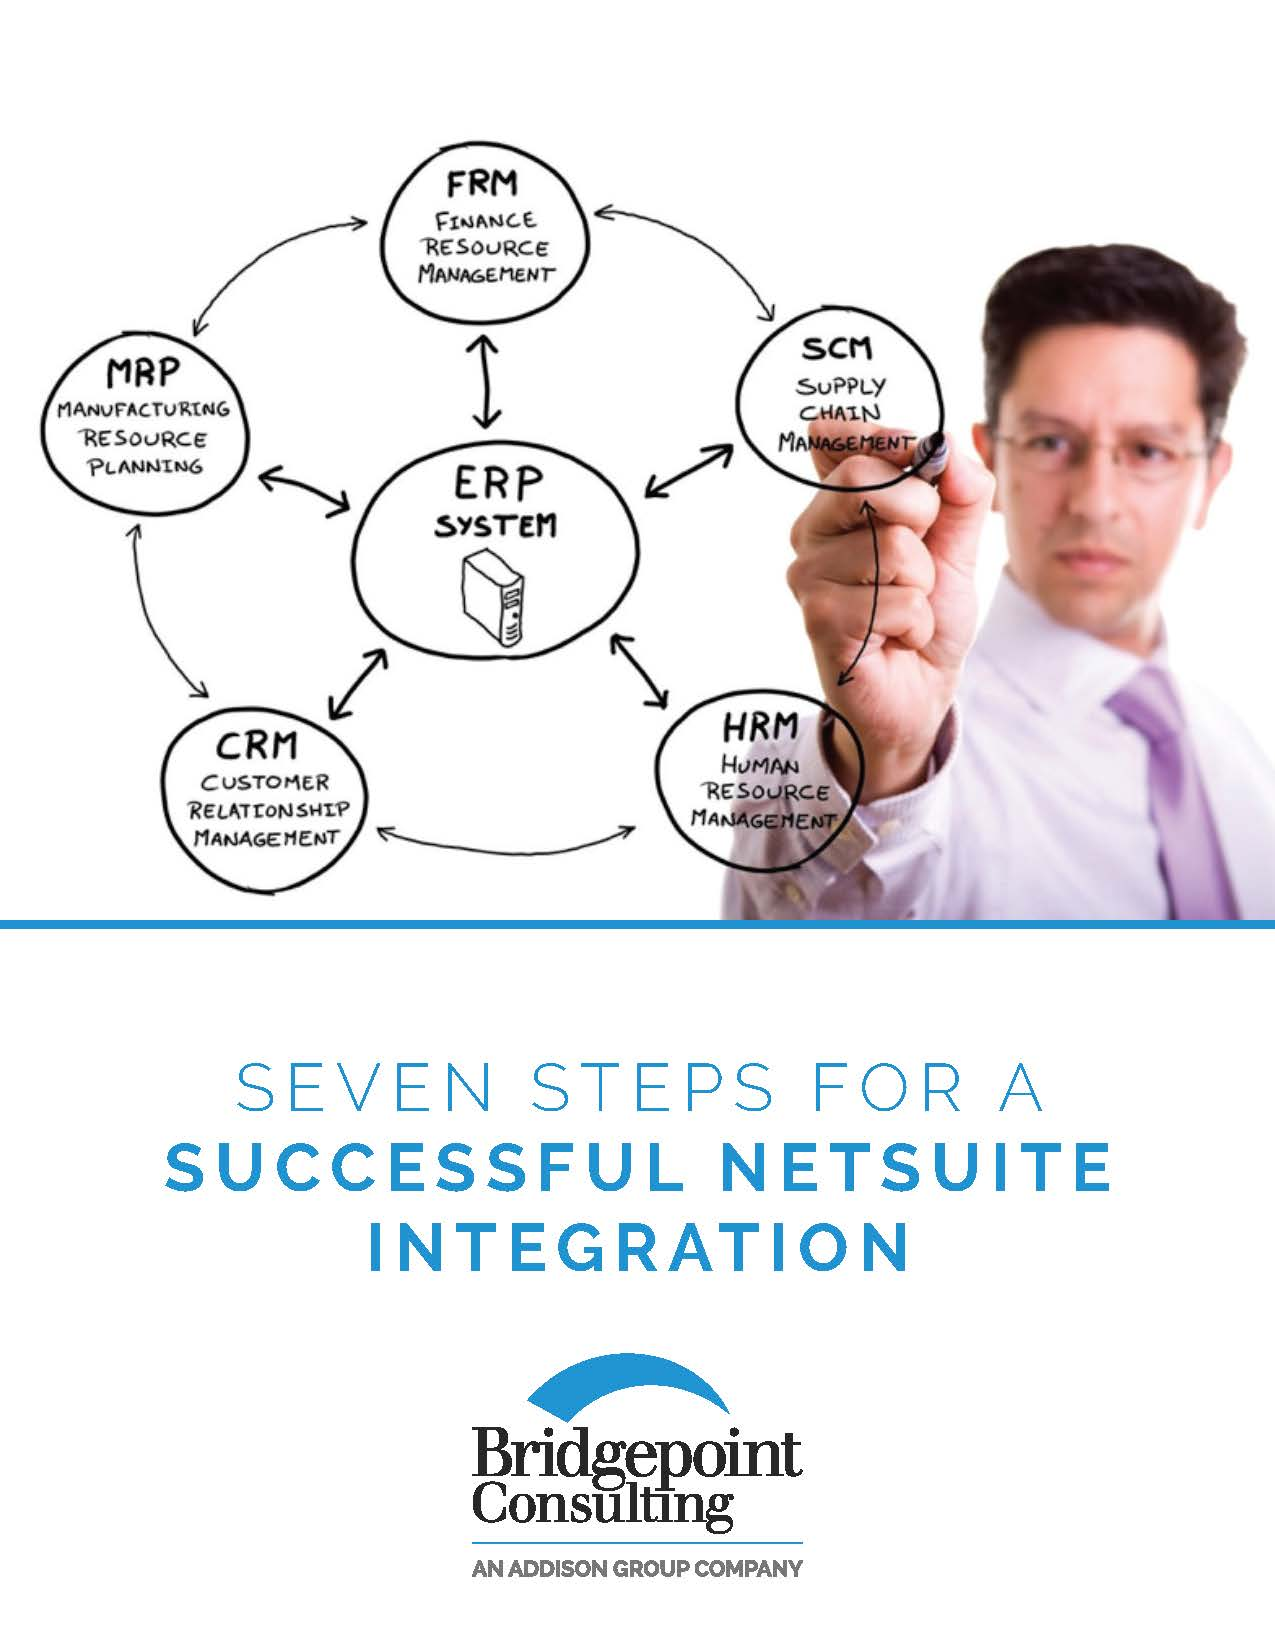 Bridgepoint NetSuite Integration Guide Cover Image